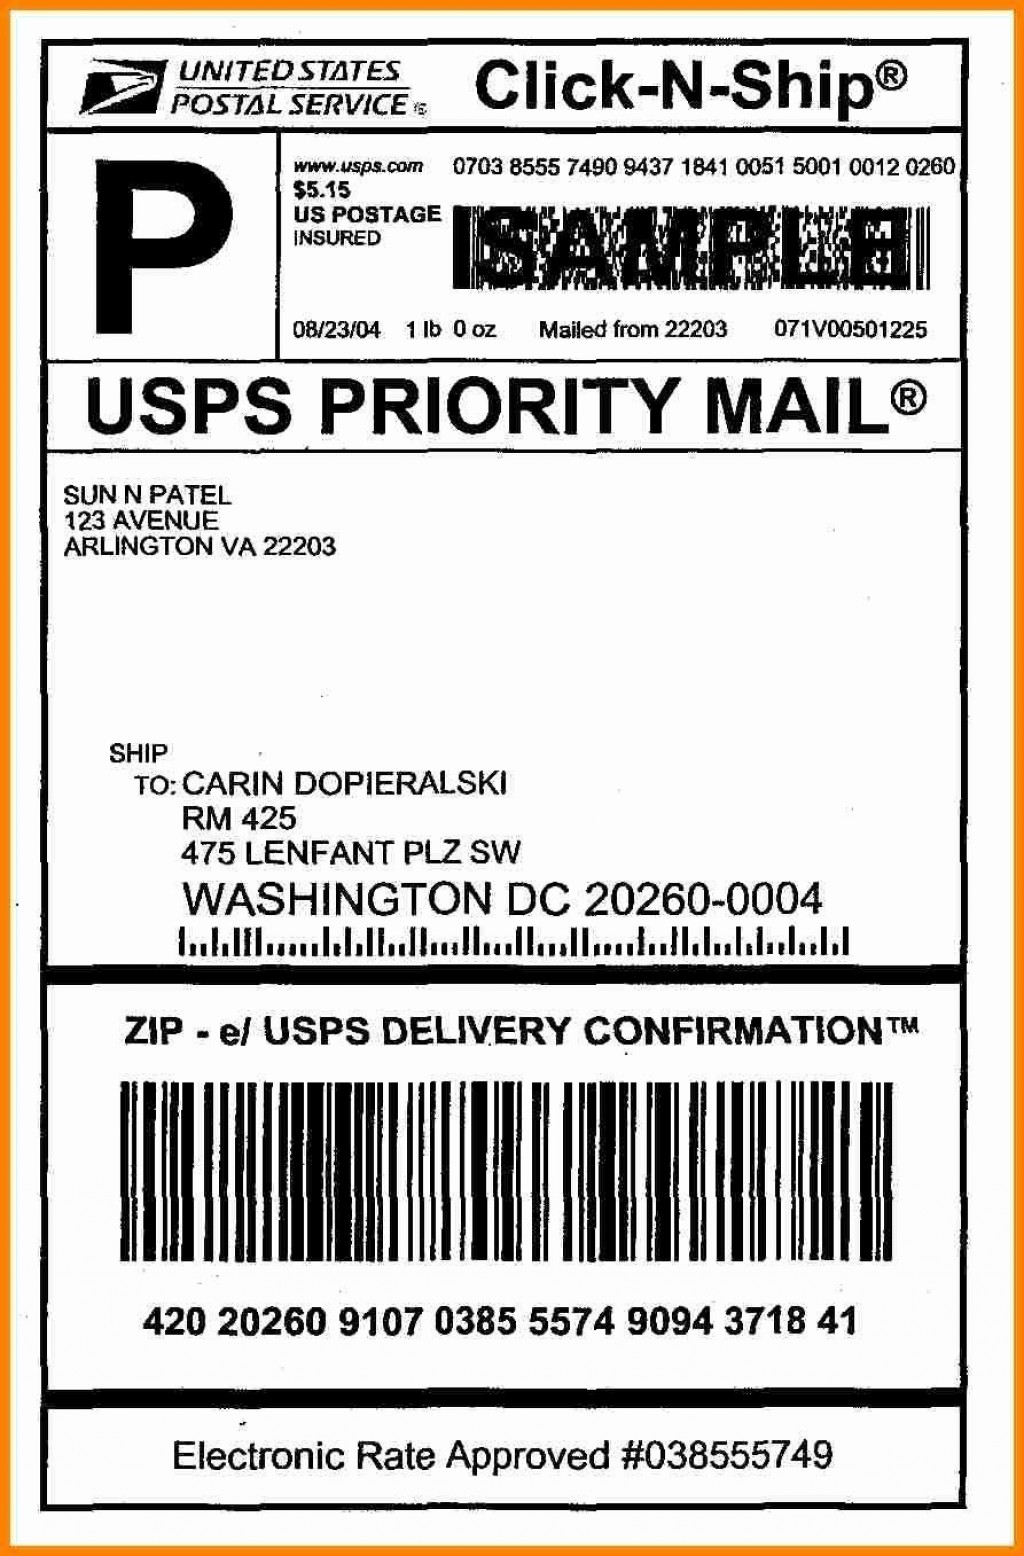 006 Best Free Usp Shipping Label Template Highest Clarity Large